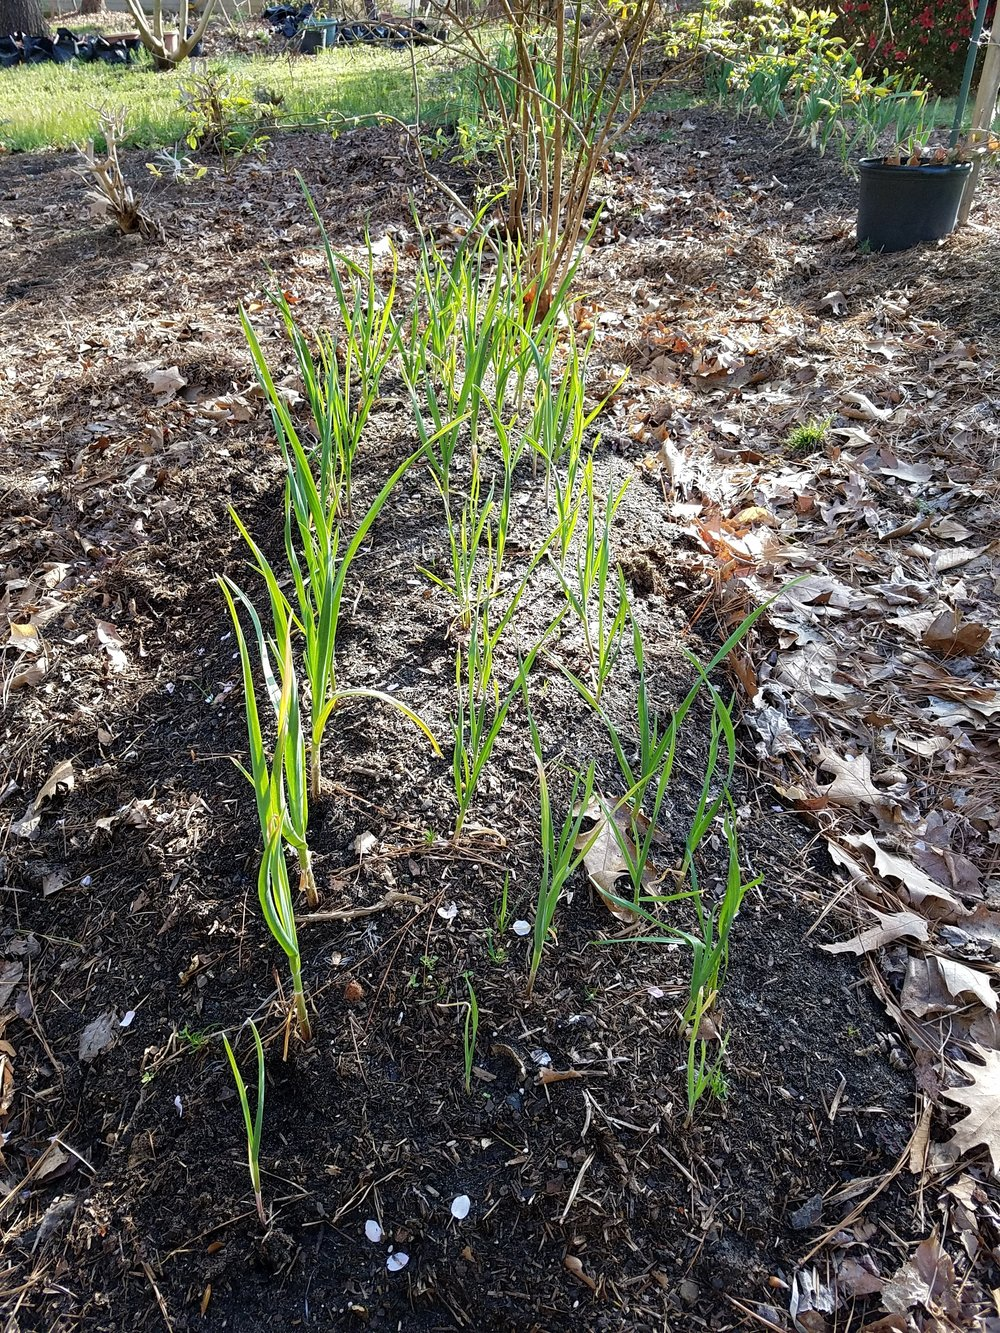 Happily growing garlic